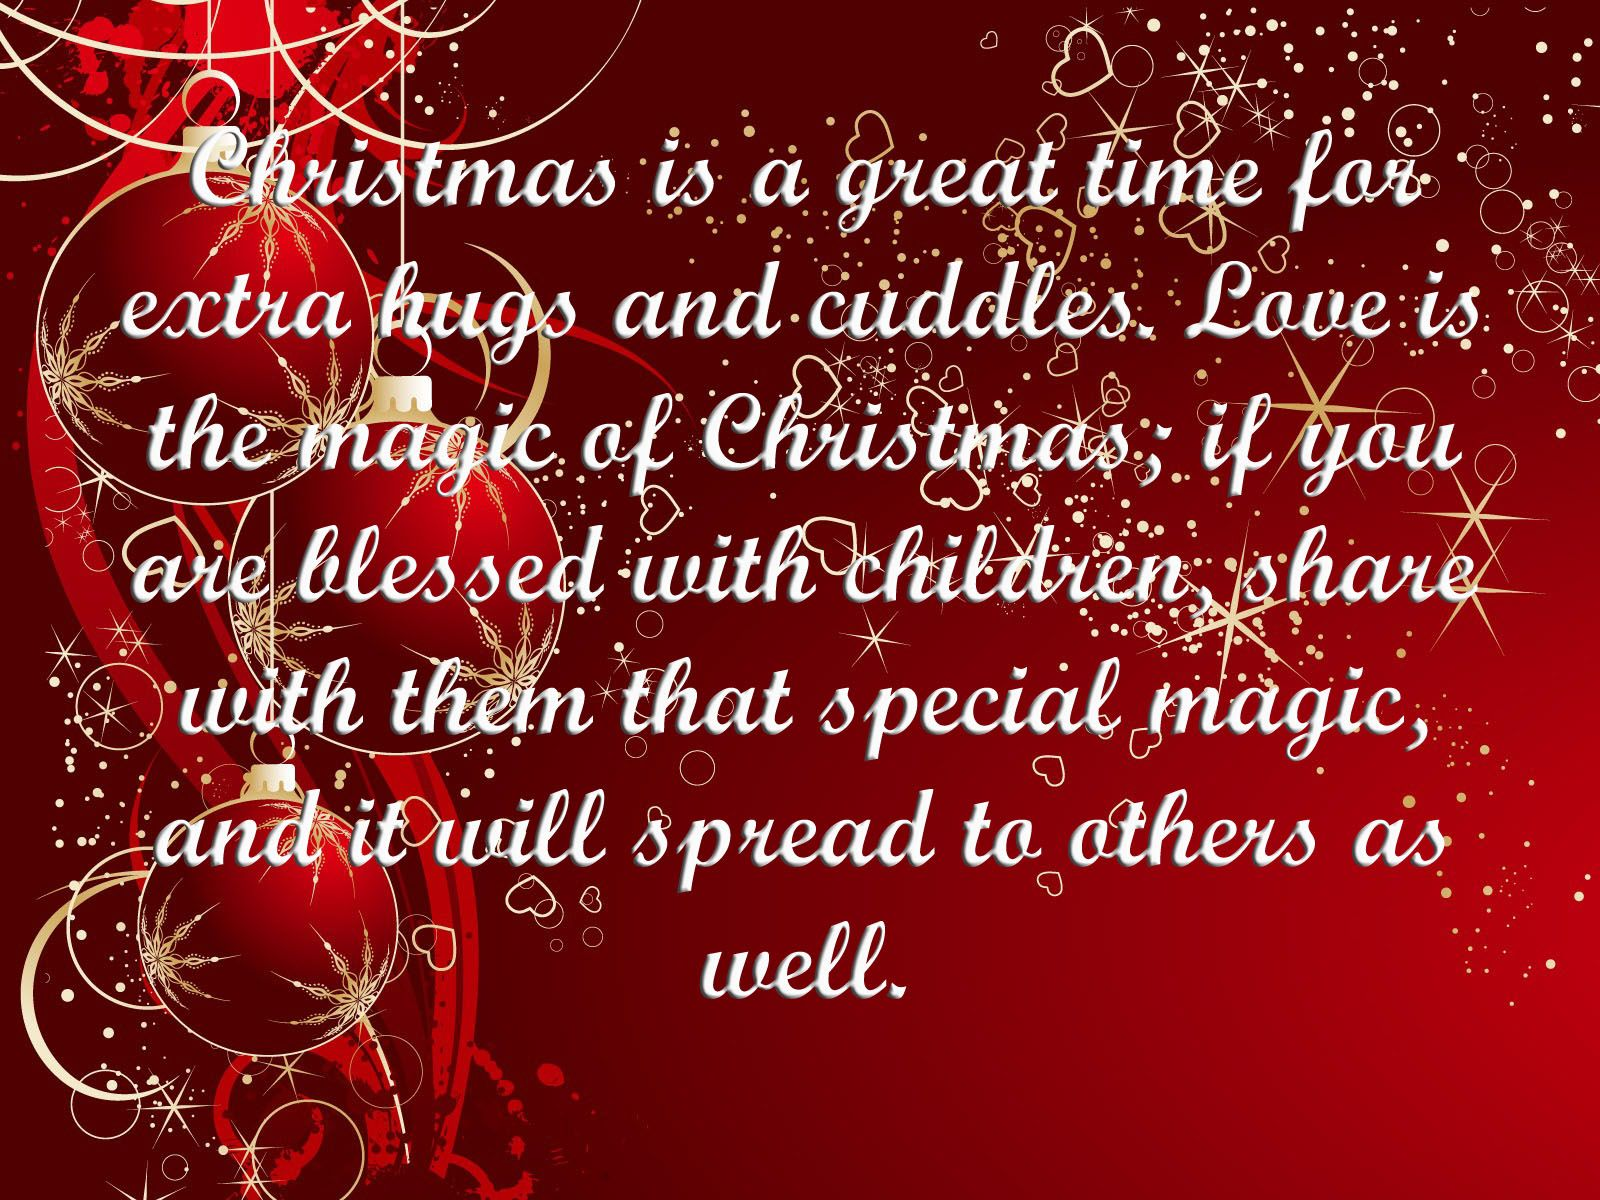 Delicieux Merry Christmas Quote 2013 With Free Wallpaper